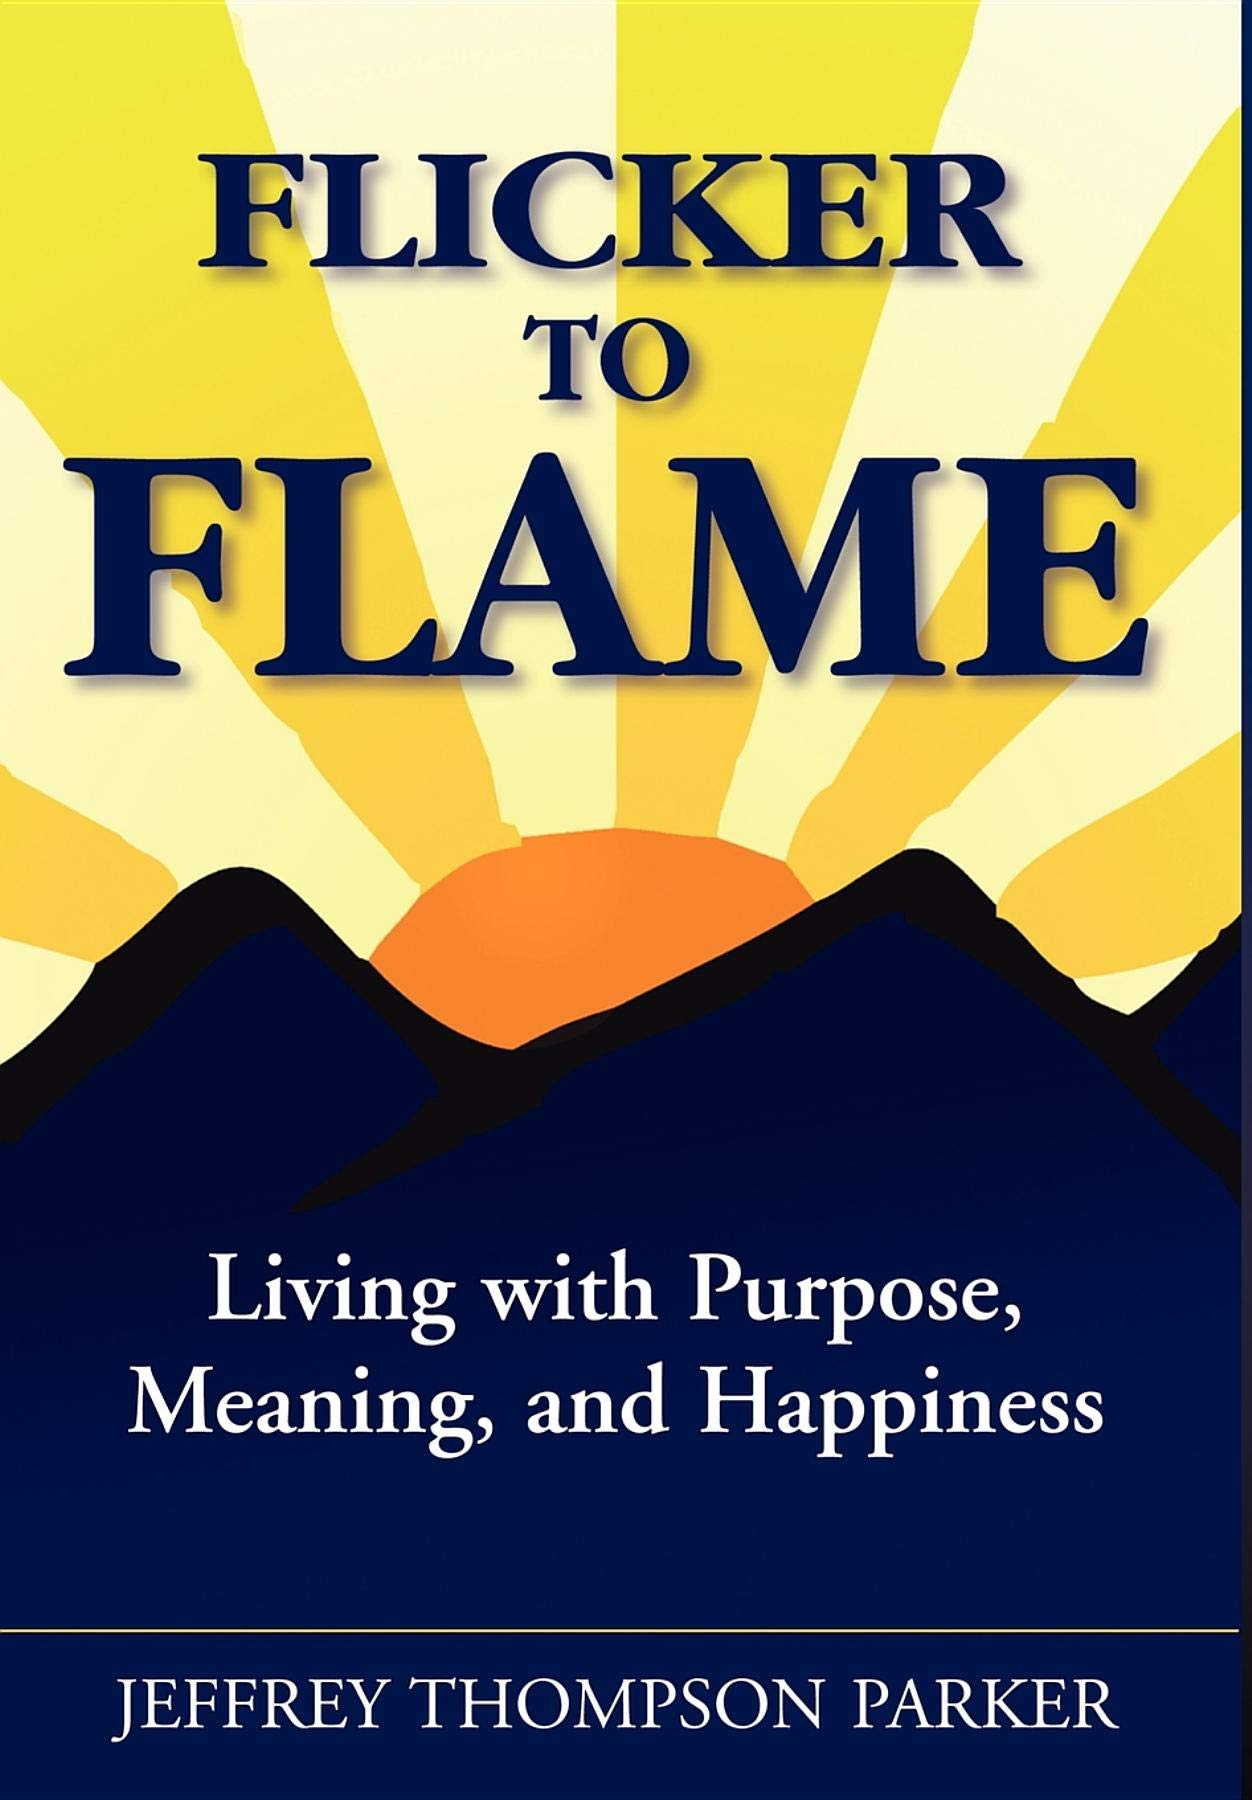 Flicker to Flame: Living with Purpose, Meaning, and